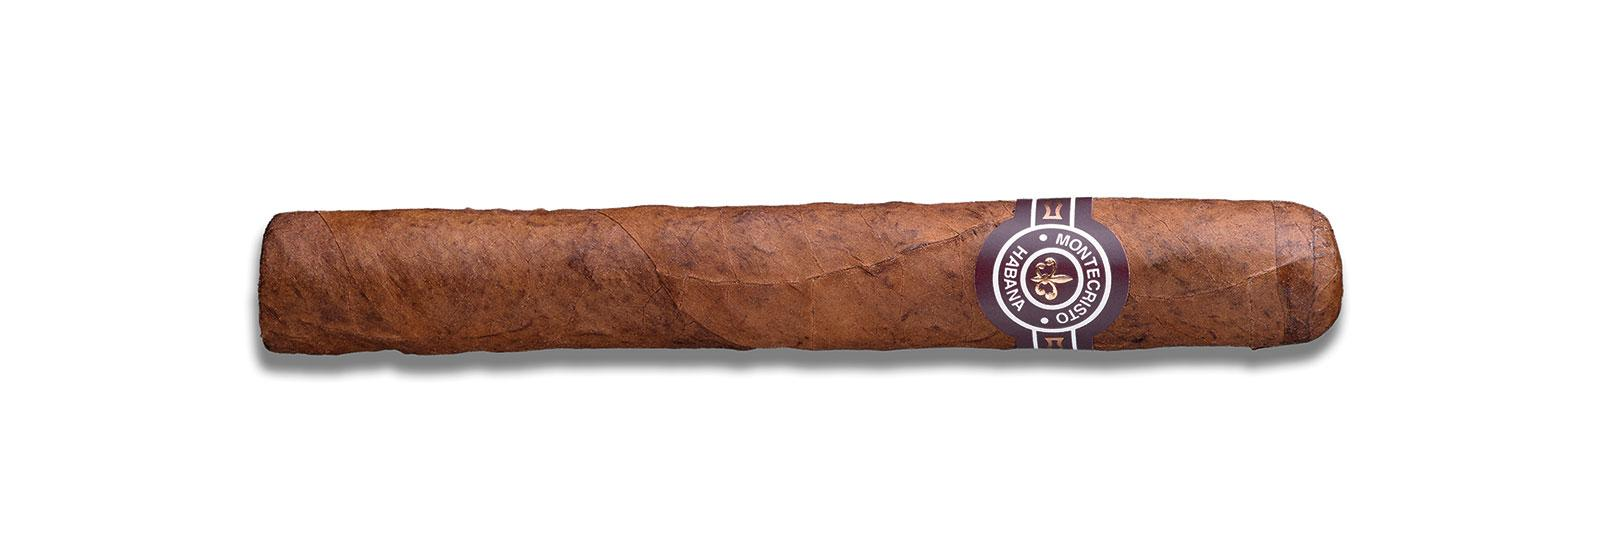 Montecristo No. 4 cigar